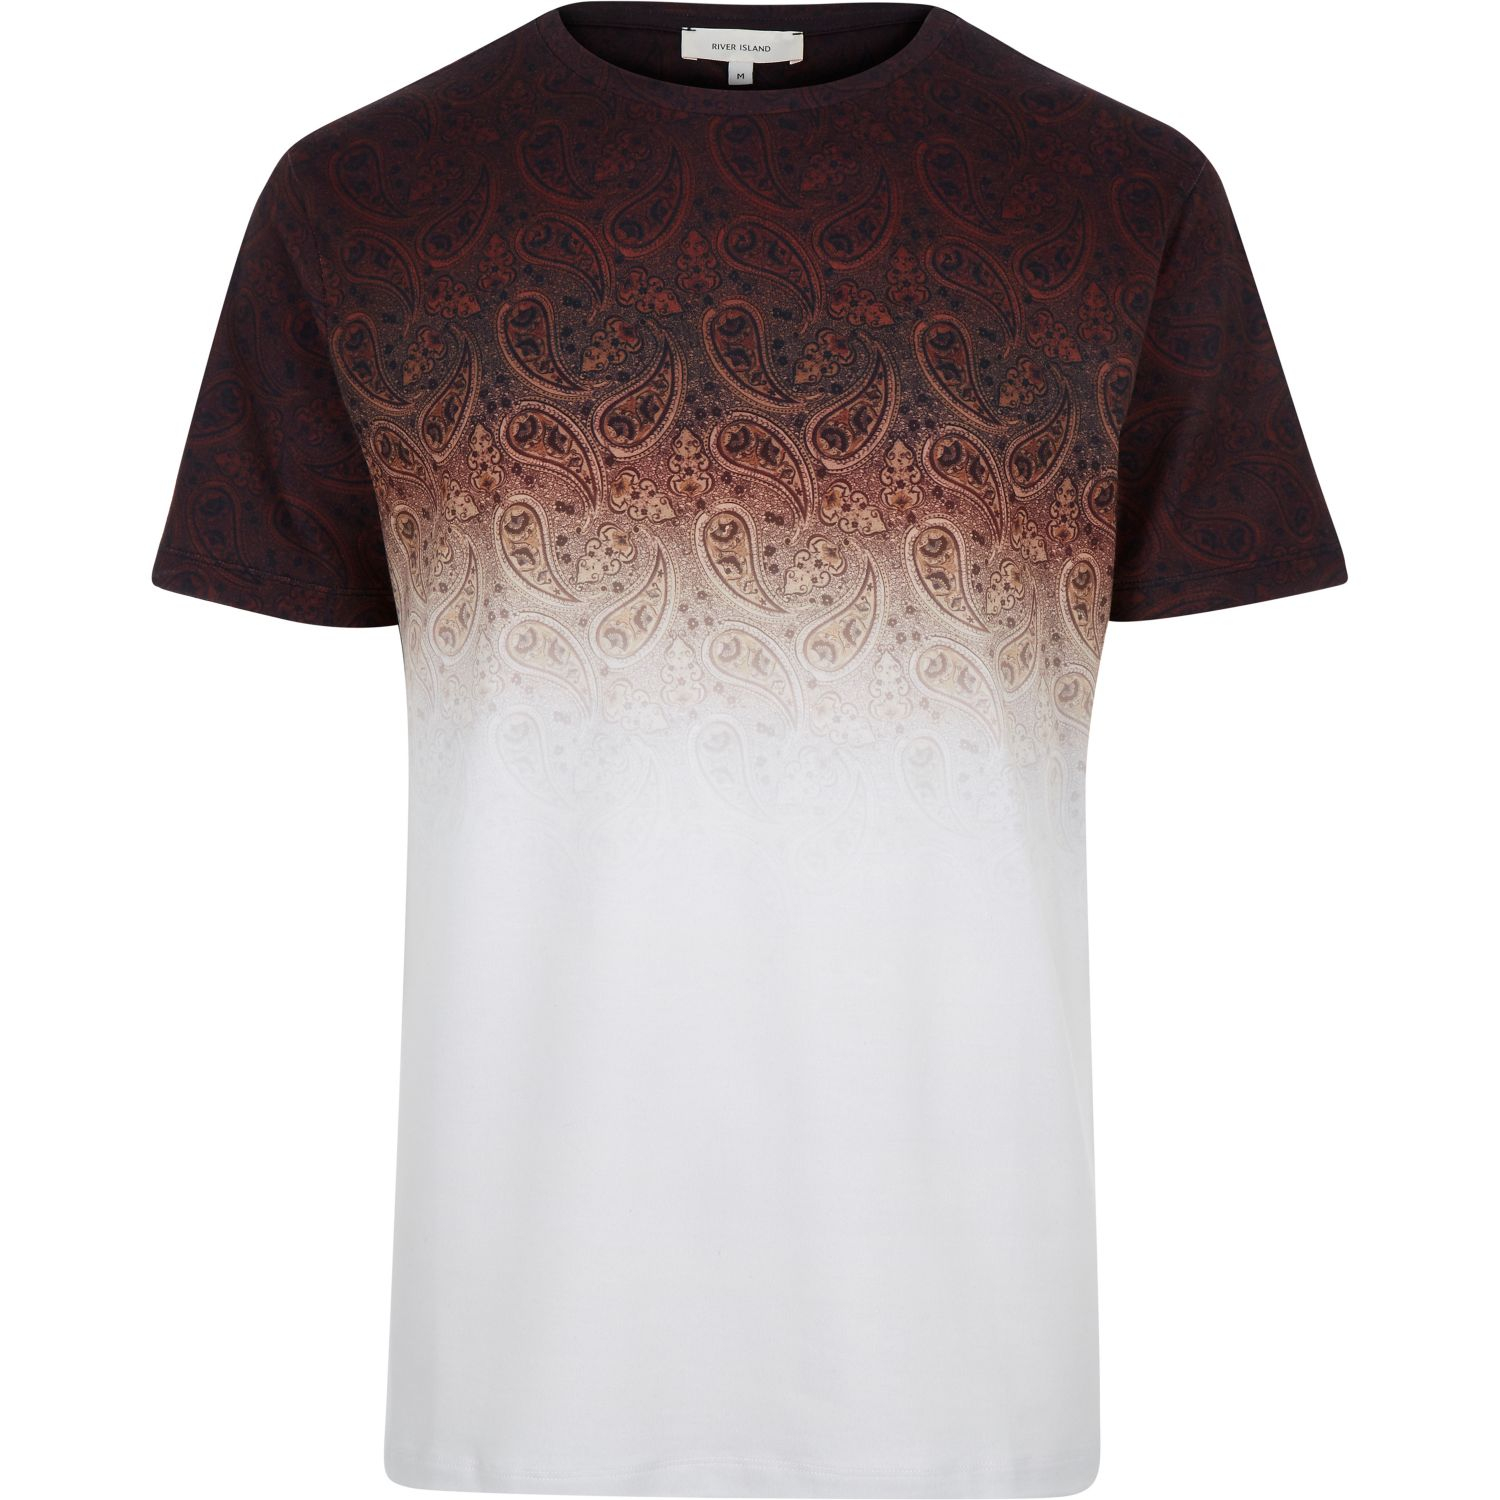 River island rust brown faded paisley print t shirt in for Faded color t shirts